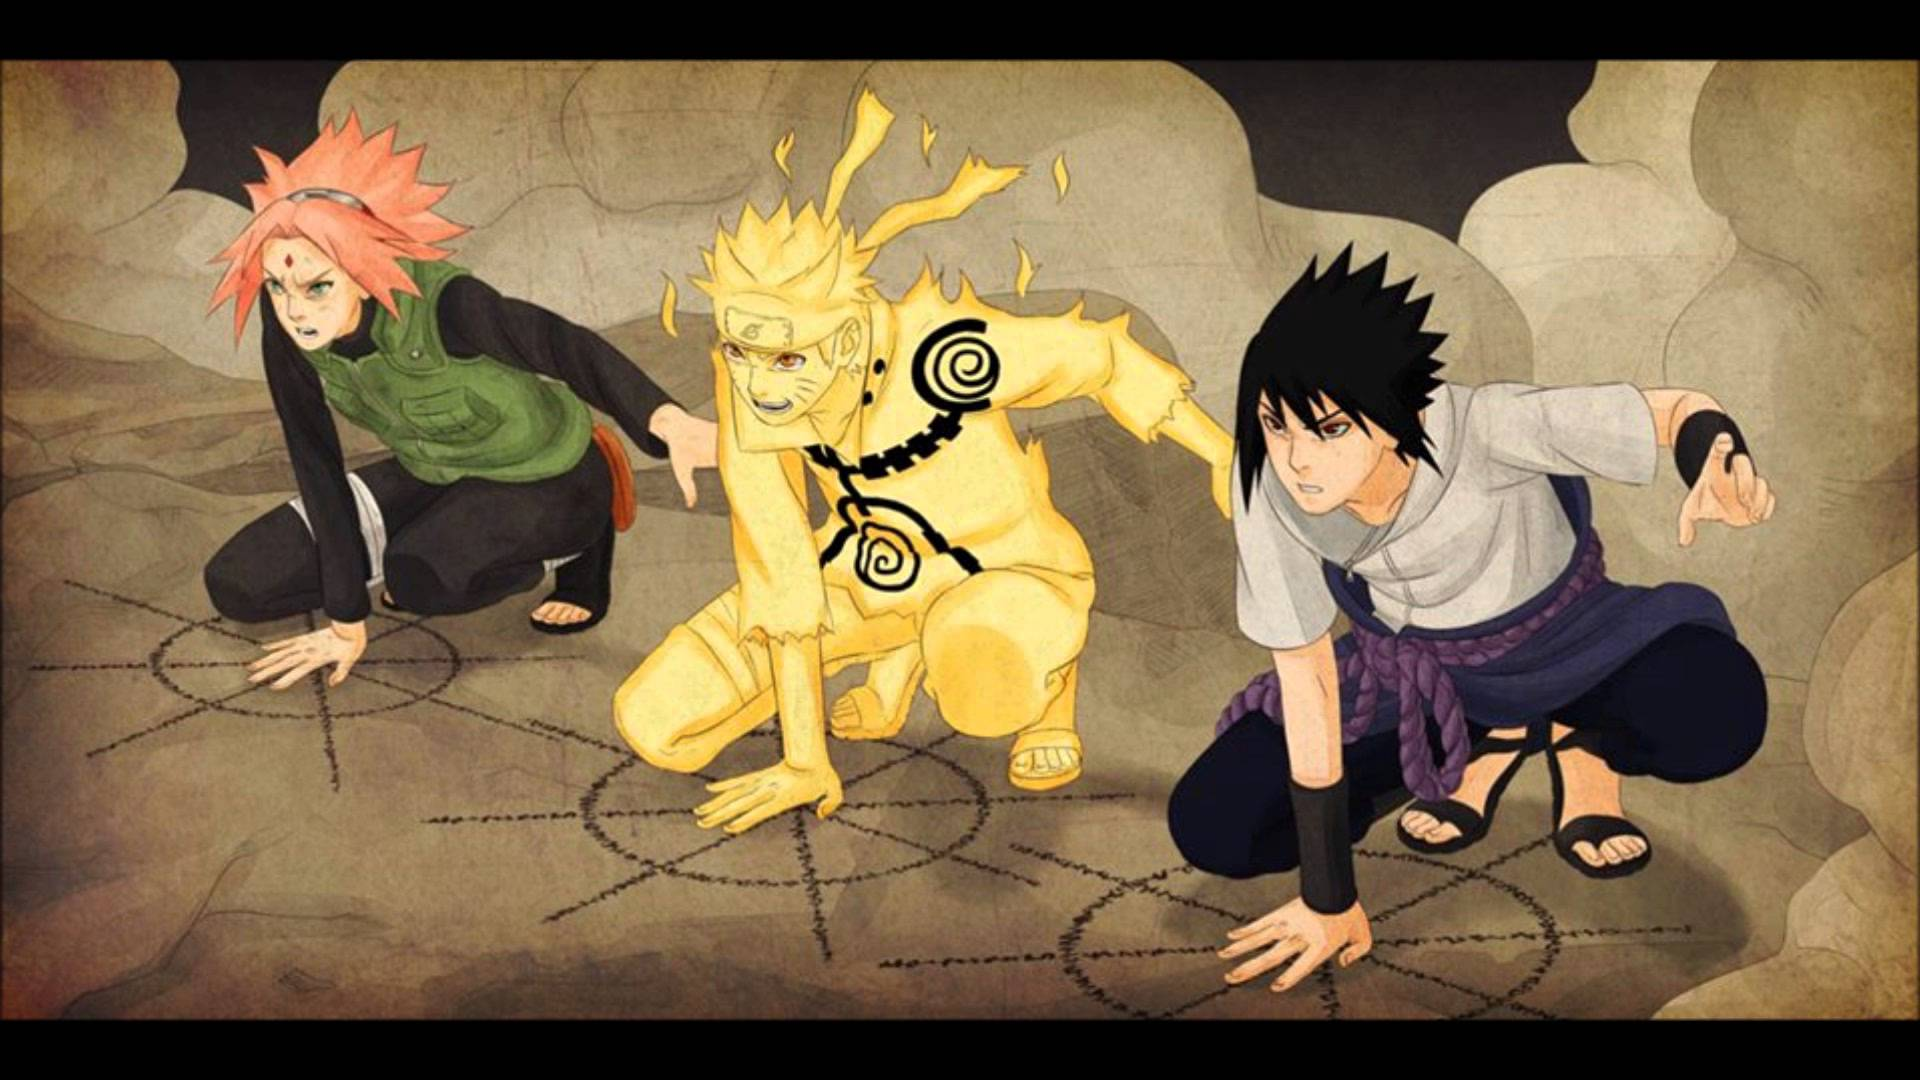 Naruto Wallpapers Team 7 Wallpaper Iphone : Anime Wallpaper ...